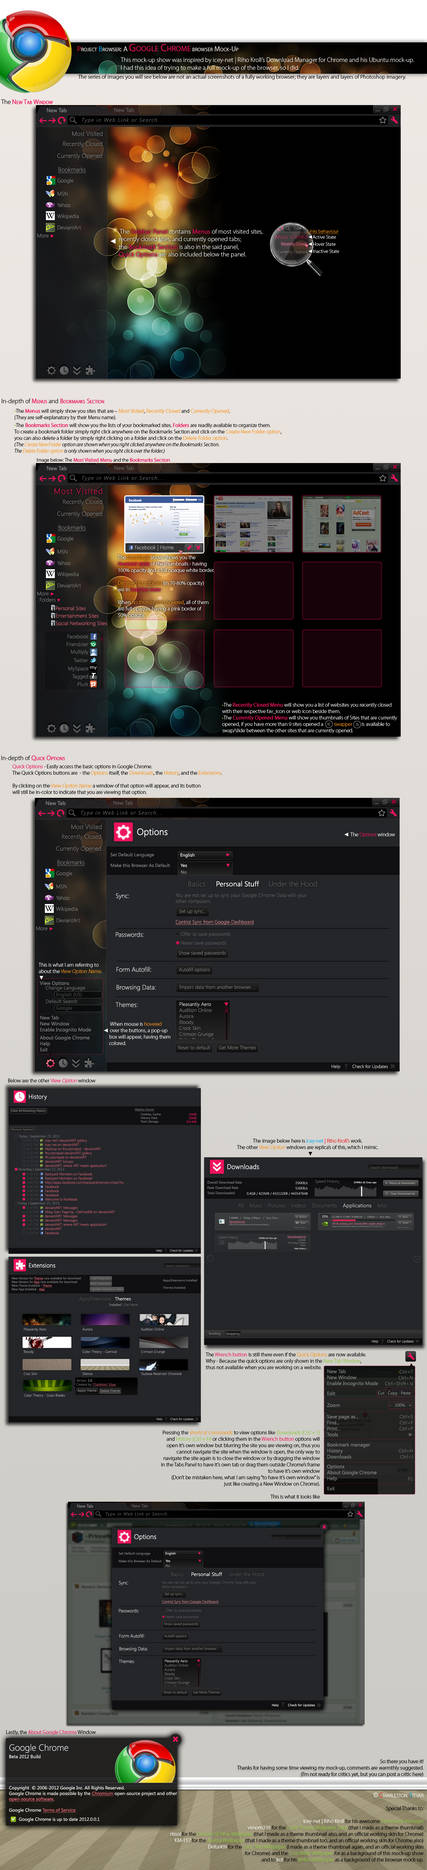 Project Browser: Mock-Up